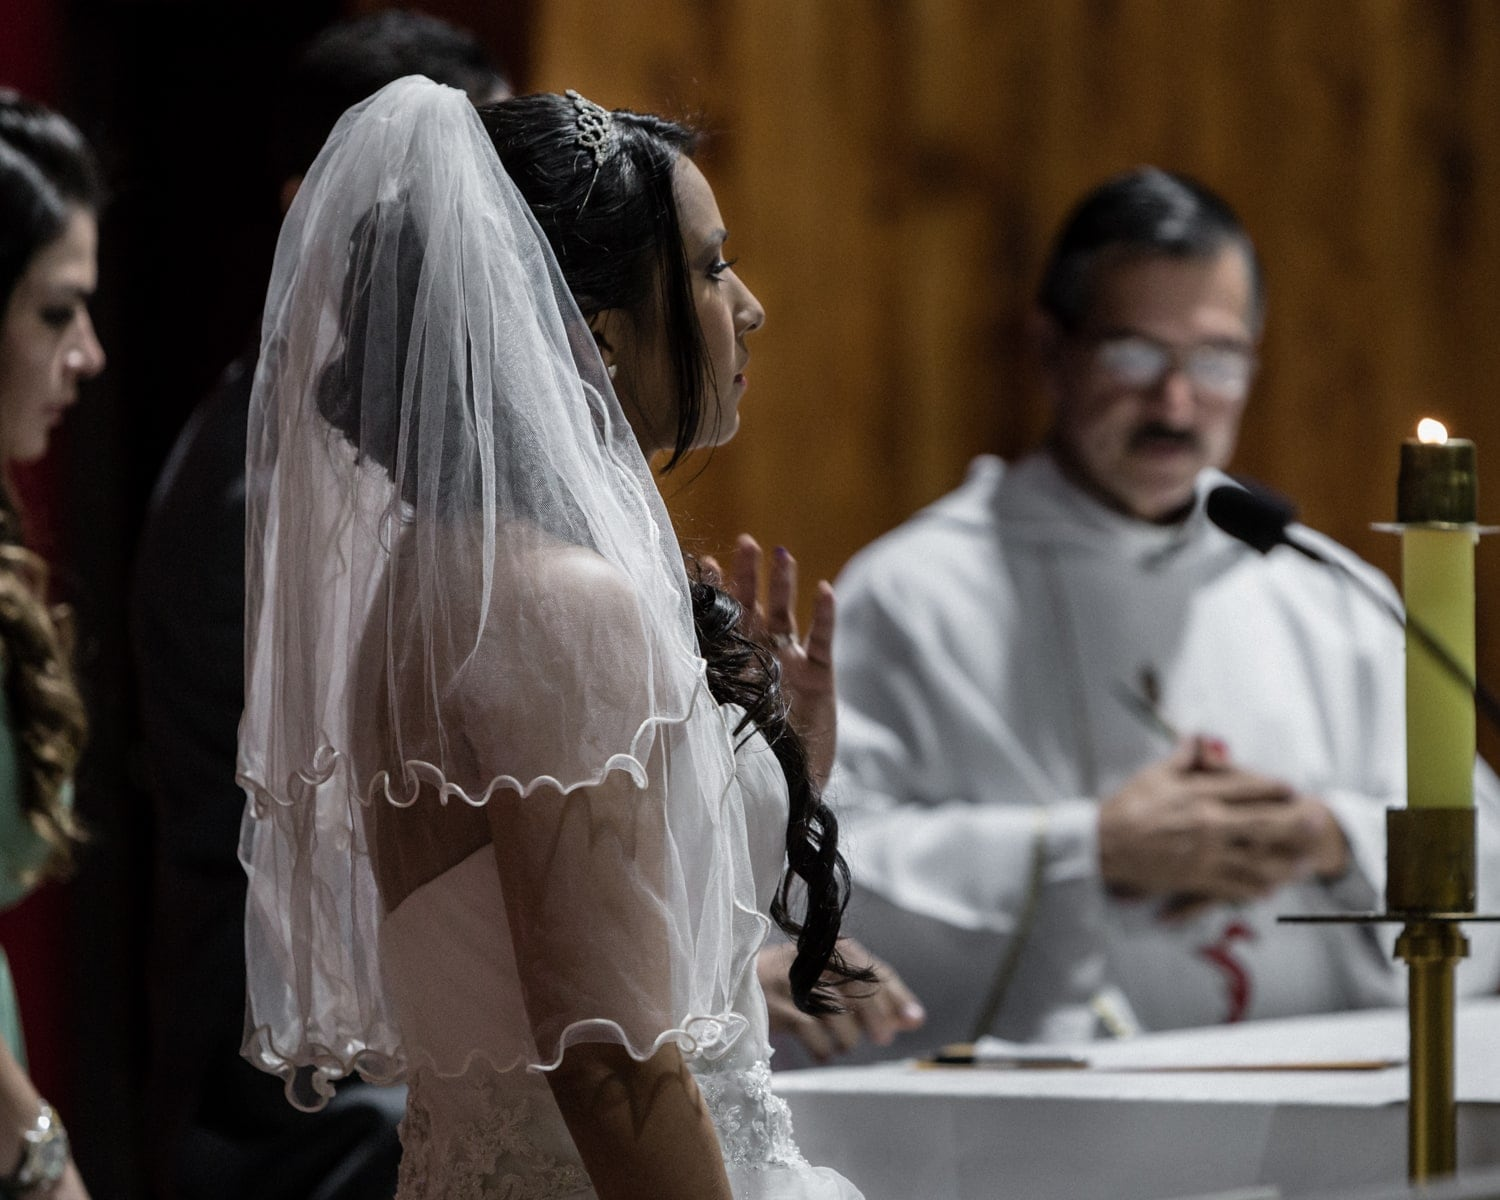 Bride wearing white veil watches as witnesses sign documents.